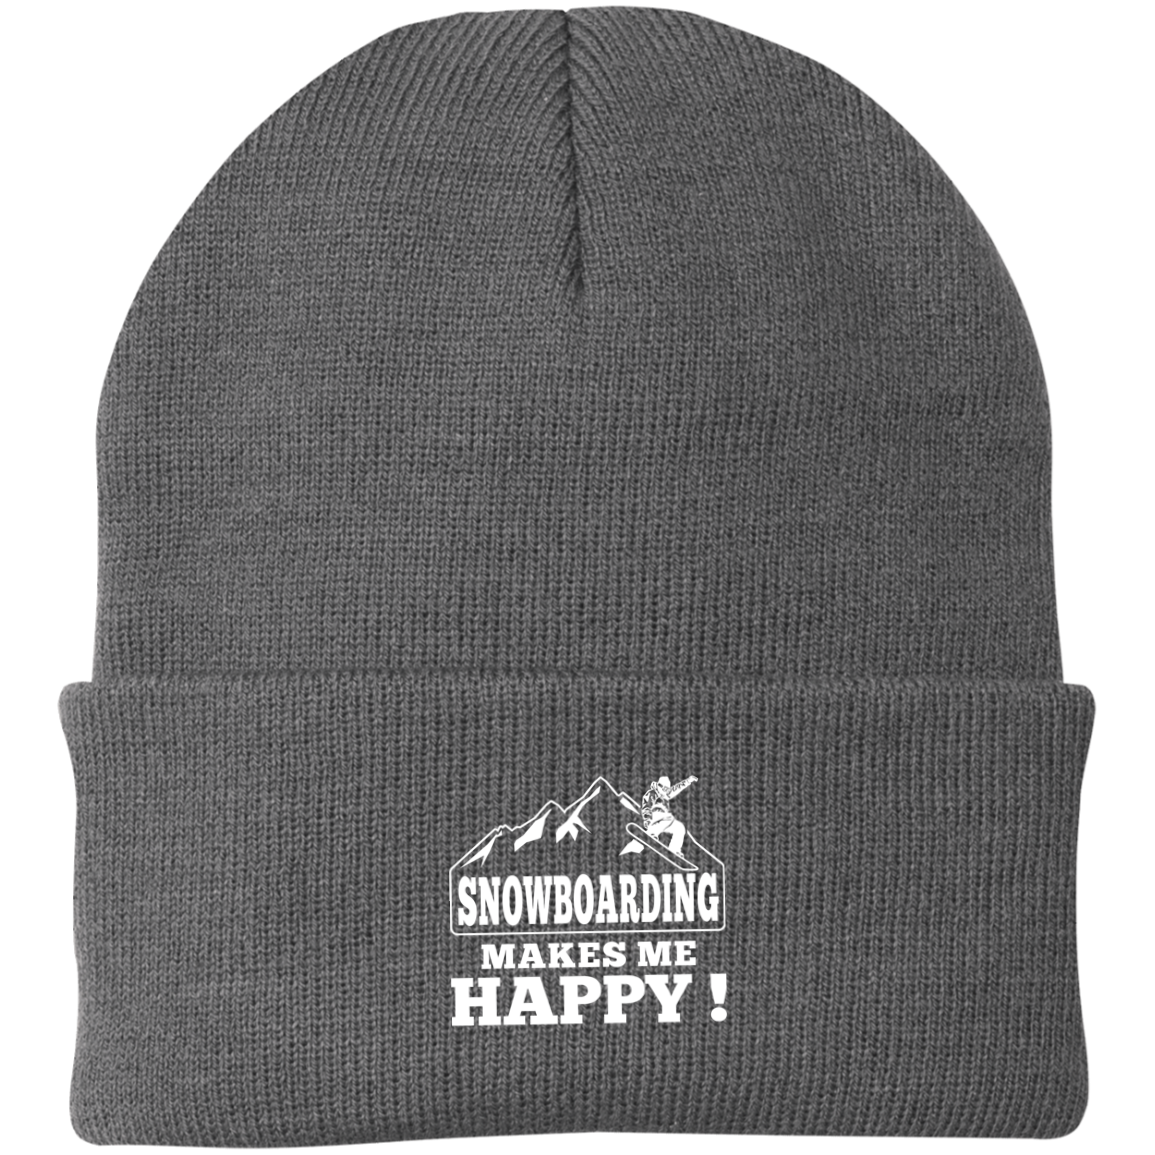 Snowboarding Makes Me Happy Knit Cap - Powderaddicts